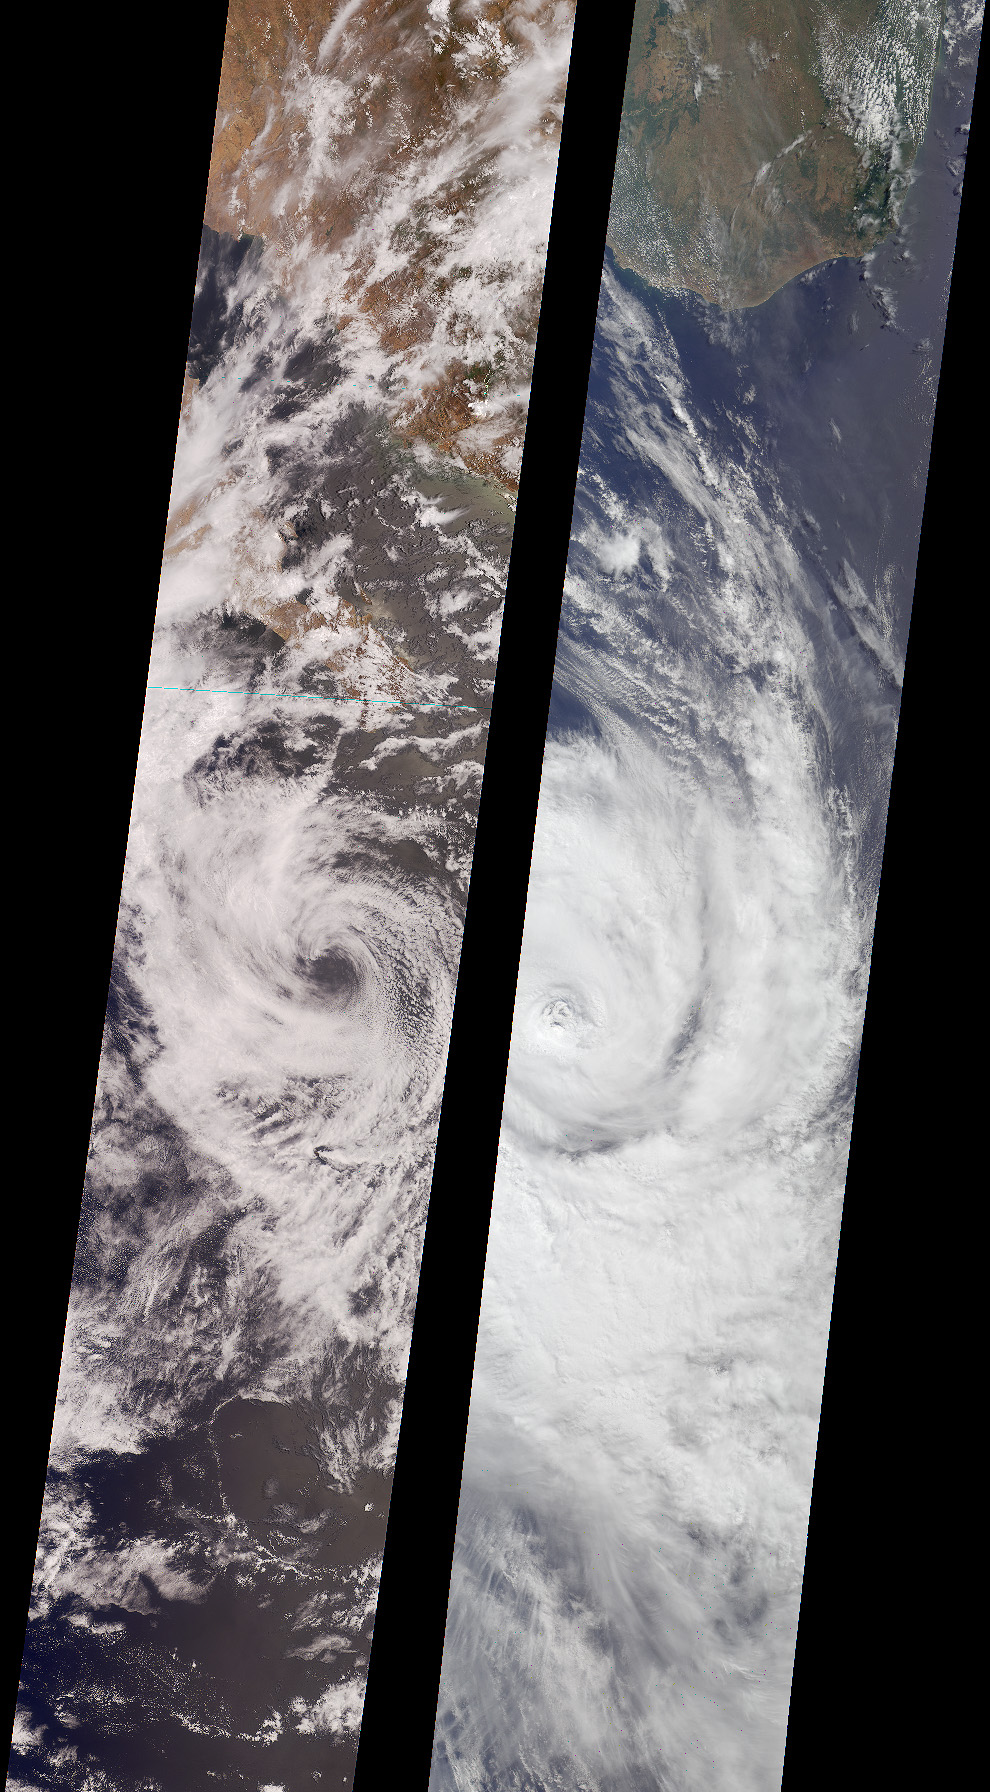 Tropical Storms Bud and Dera